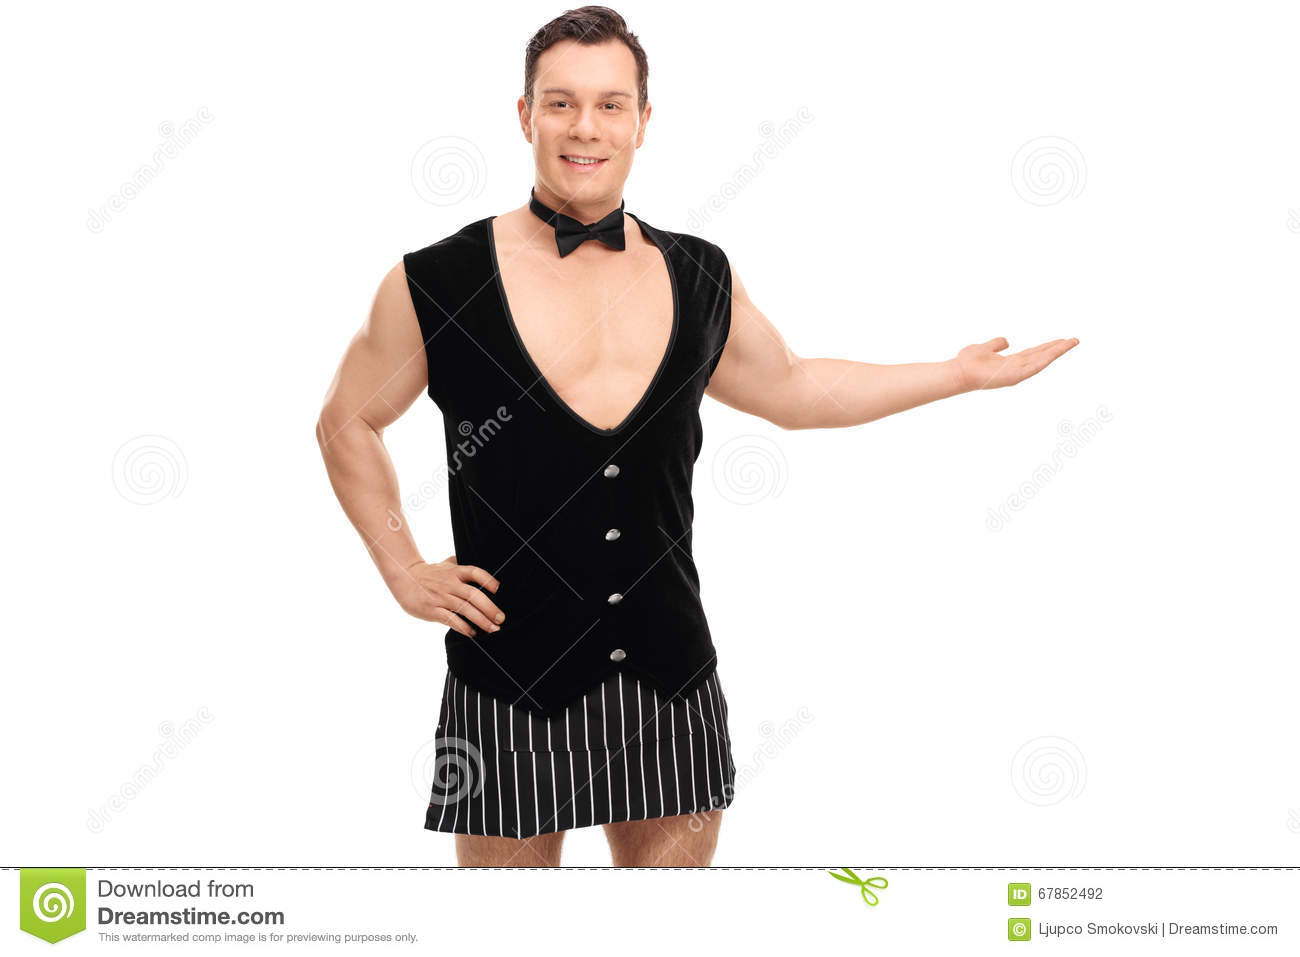 Bartender In A Vest And An Apron Stock Photo - Image: 67852492